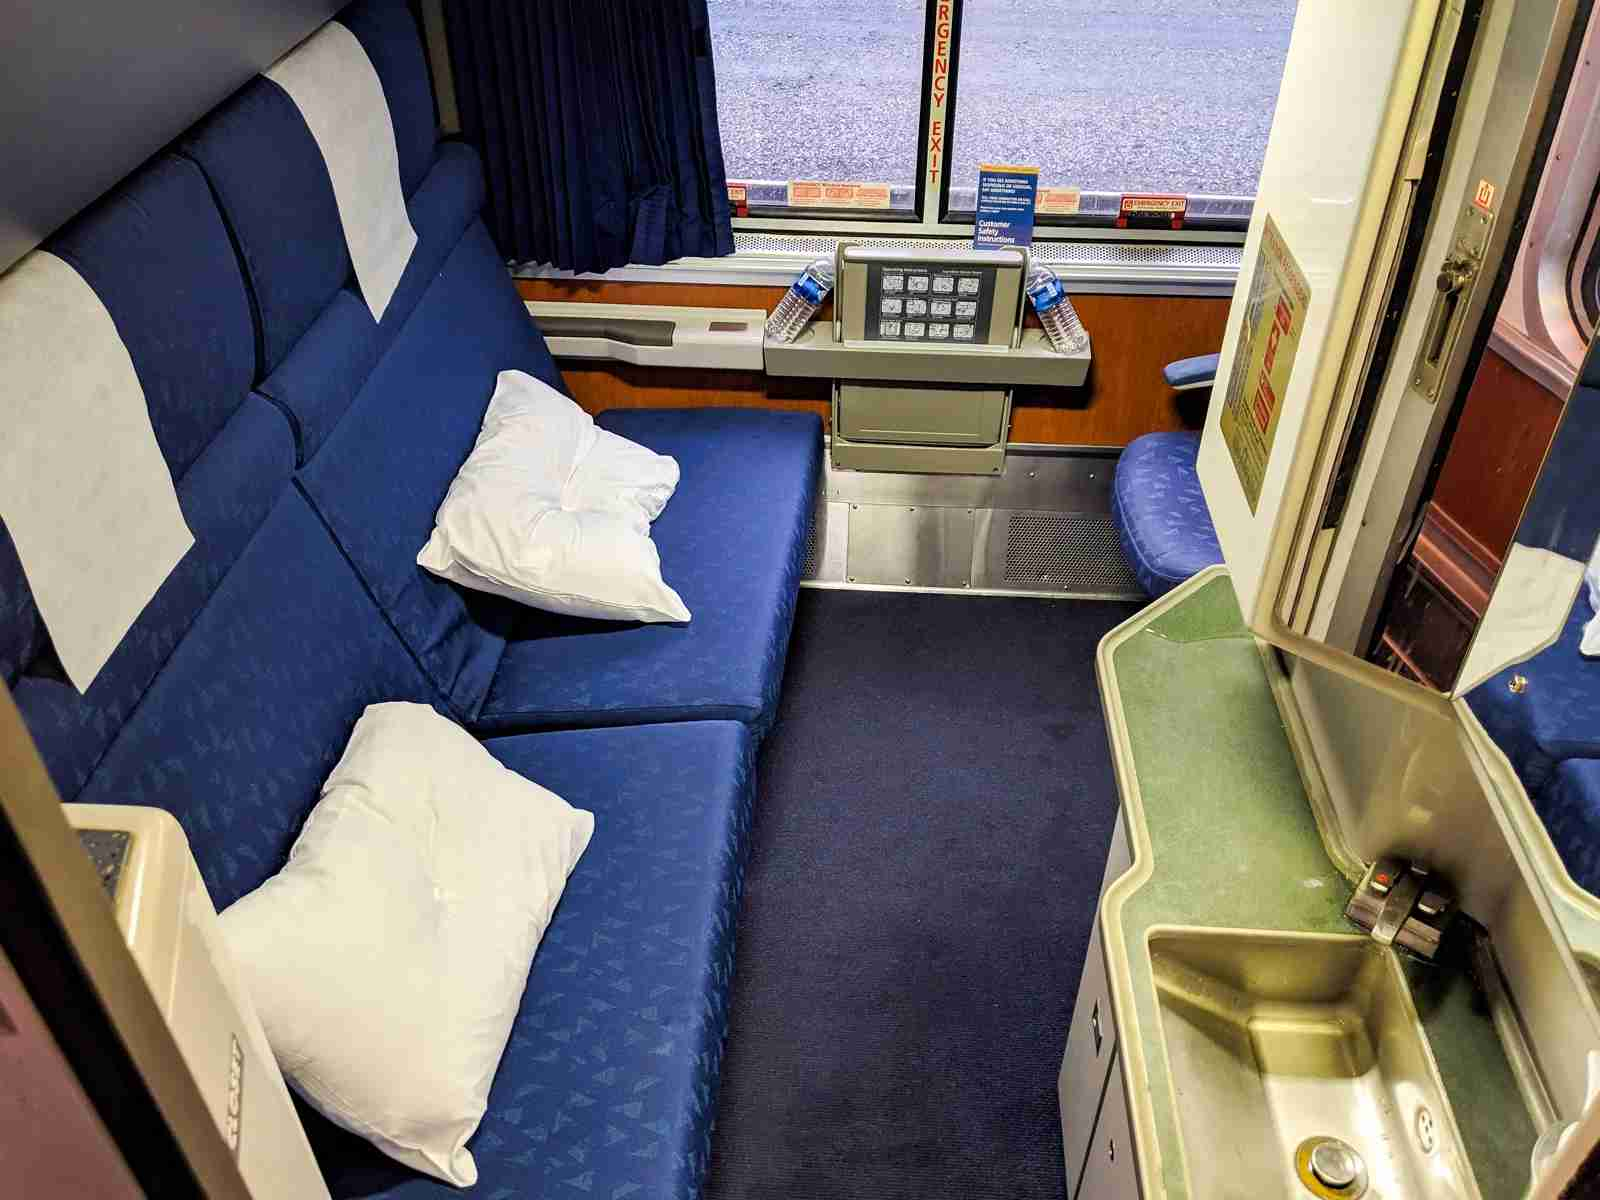 A sleeper room that could hold three passengers.